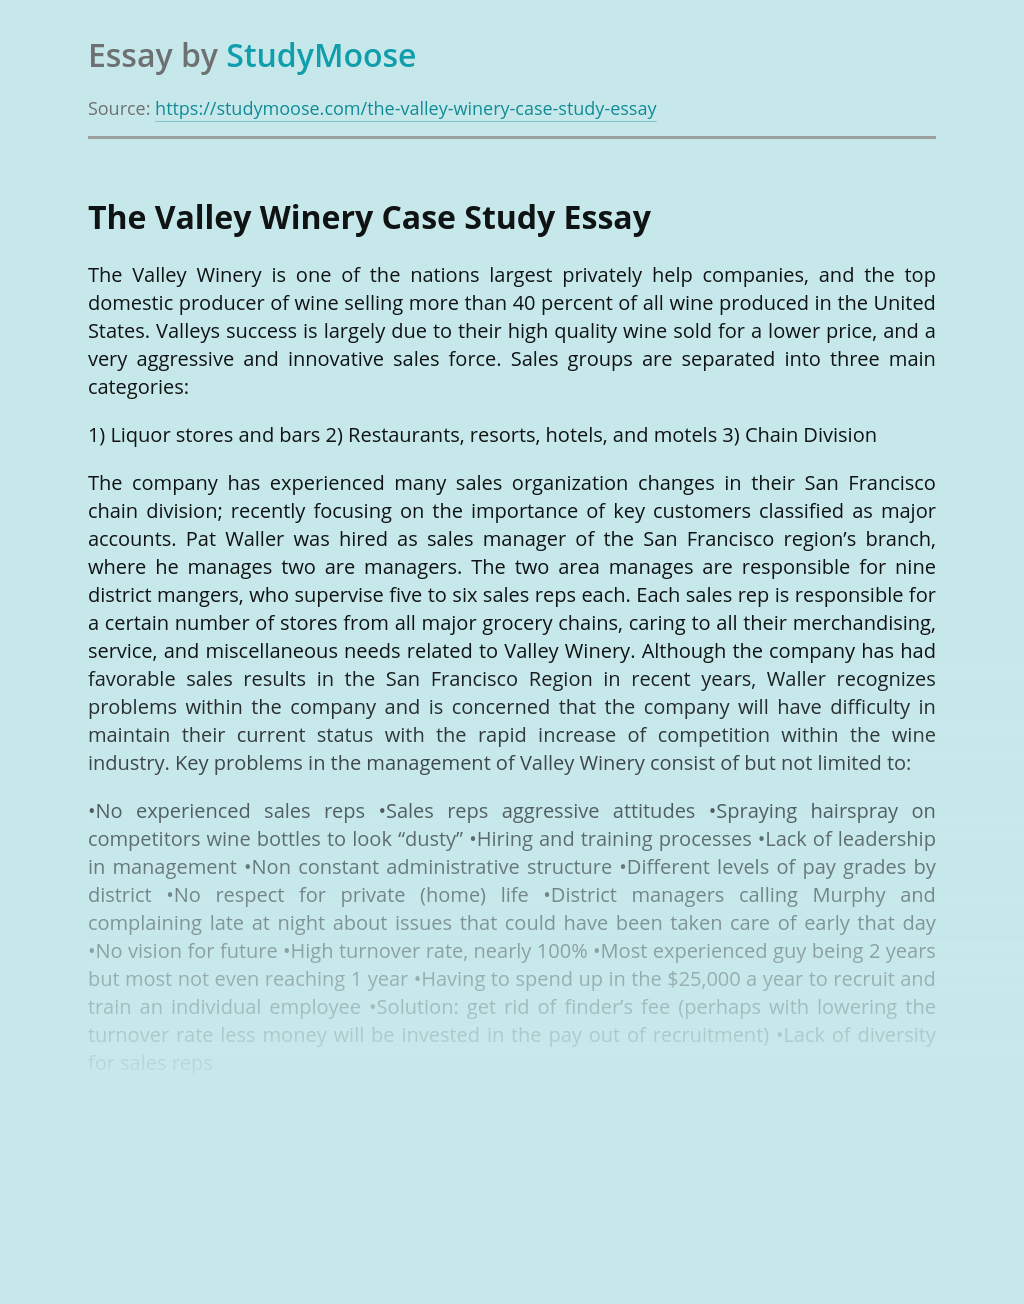 The Valley Winery Case Study